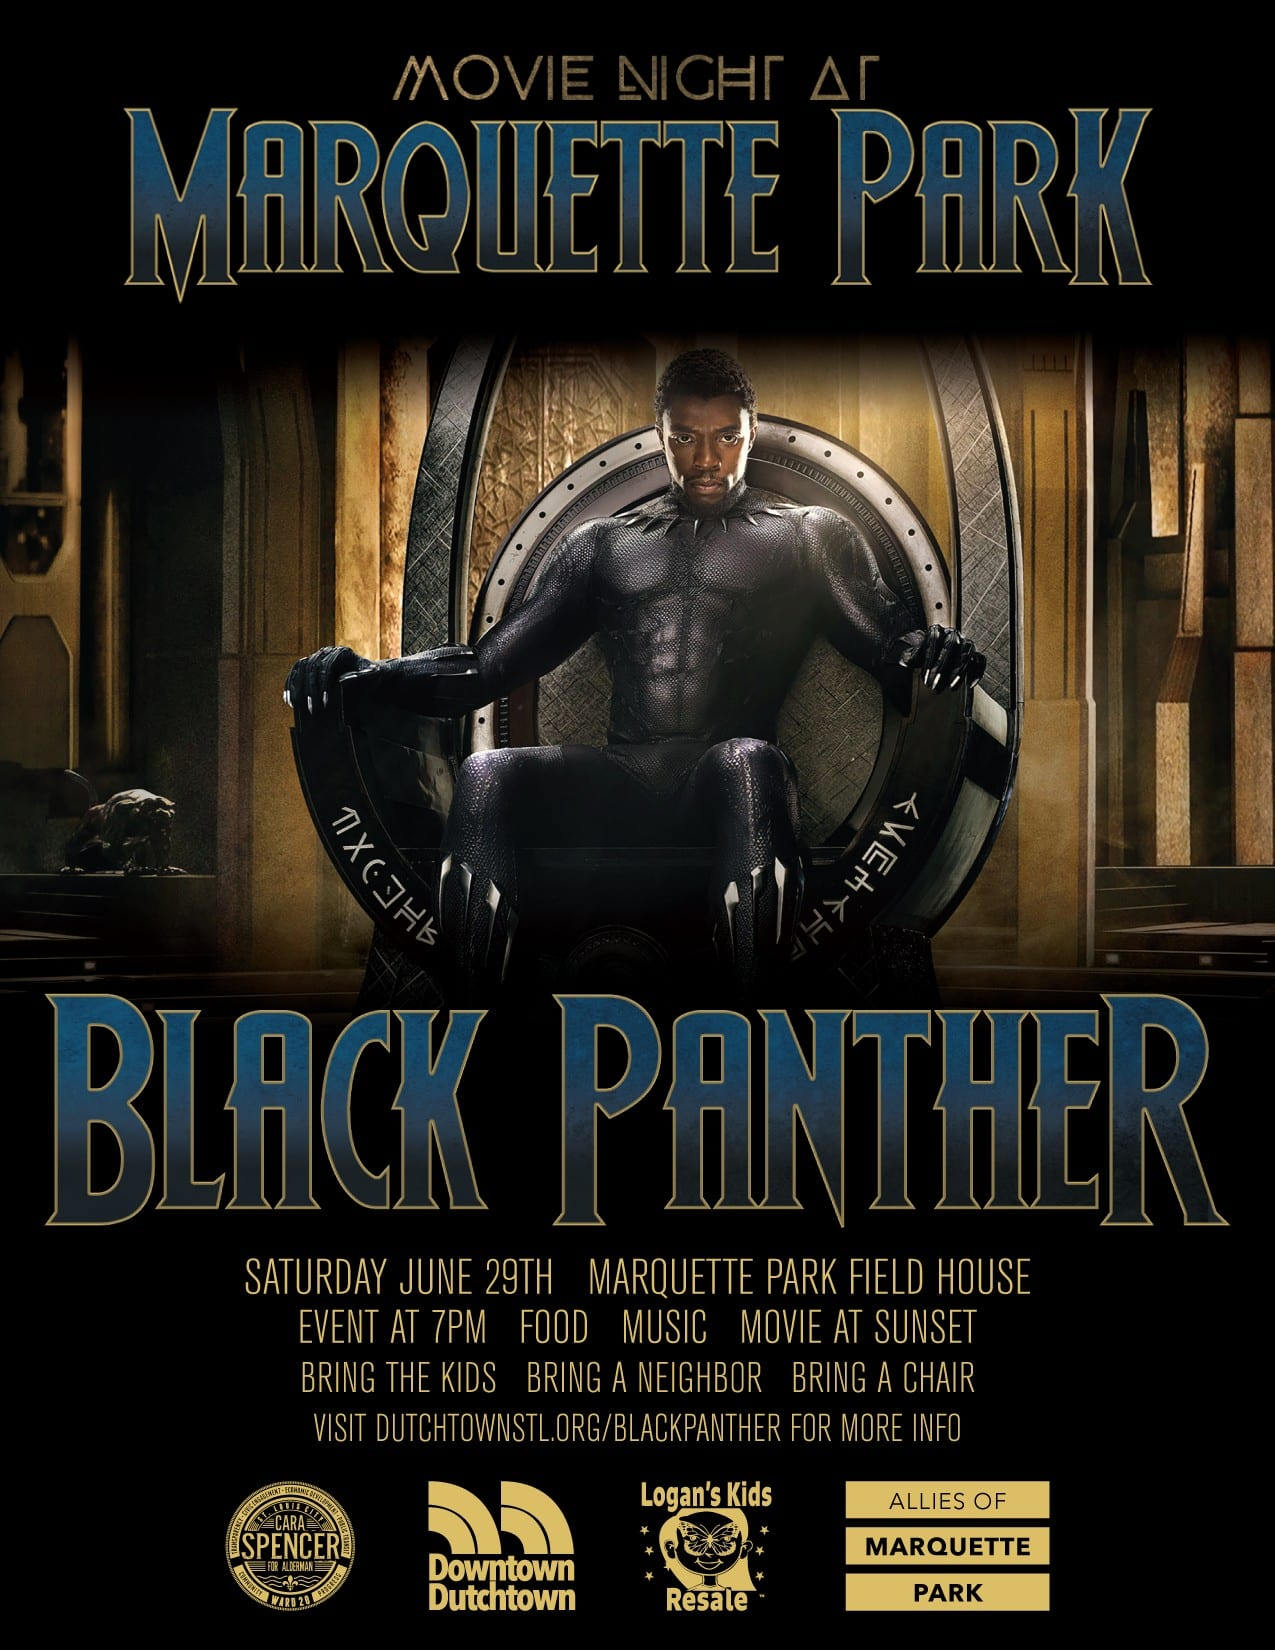 Movie Night at Marquette Park: Black Panther